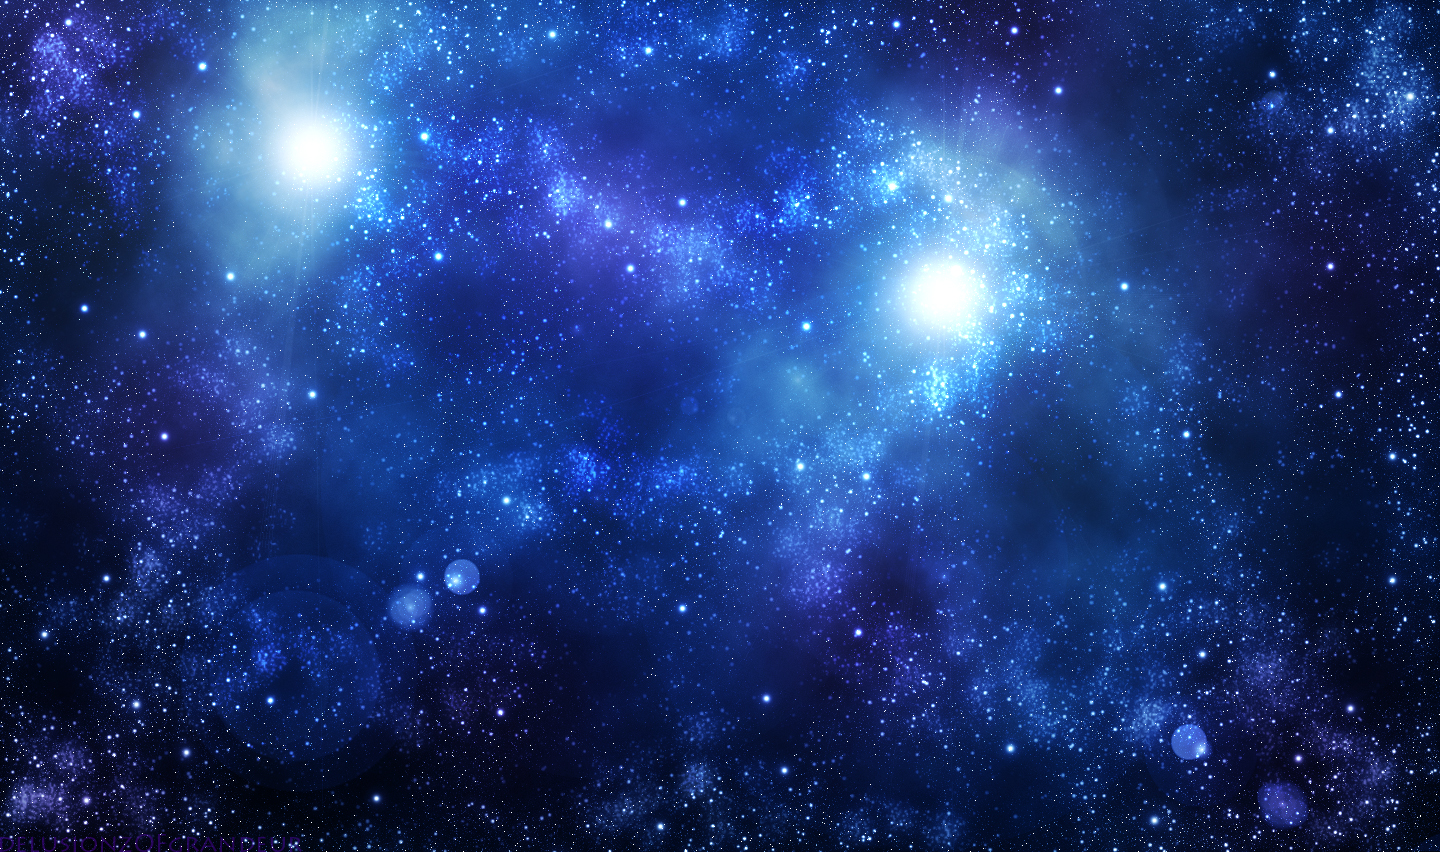 Galaxy Space Wallpaper 4k Apk Download: Space Galaxy HD Wallpapers